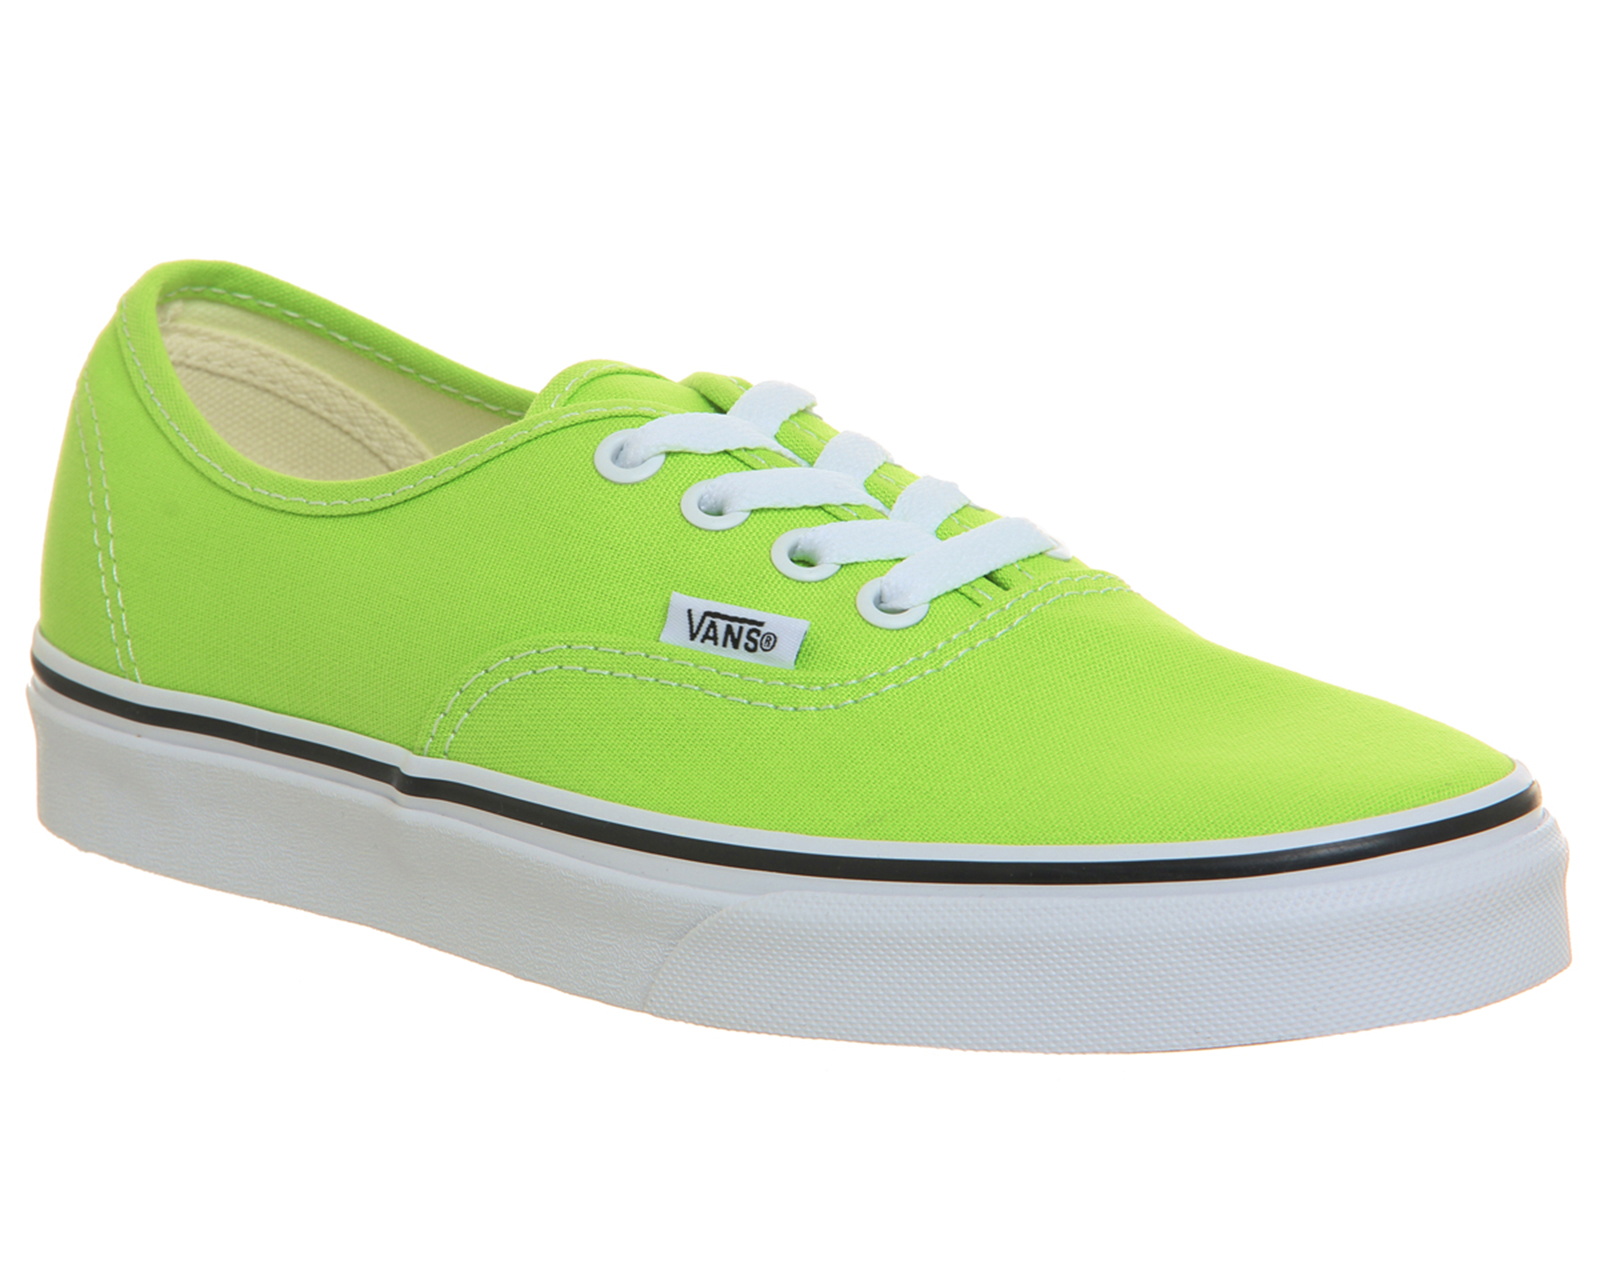 Sentinel Womens Vans Authentic Trainers Jasmine Green Trainers Shoes 8a88975a2a4d